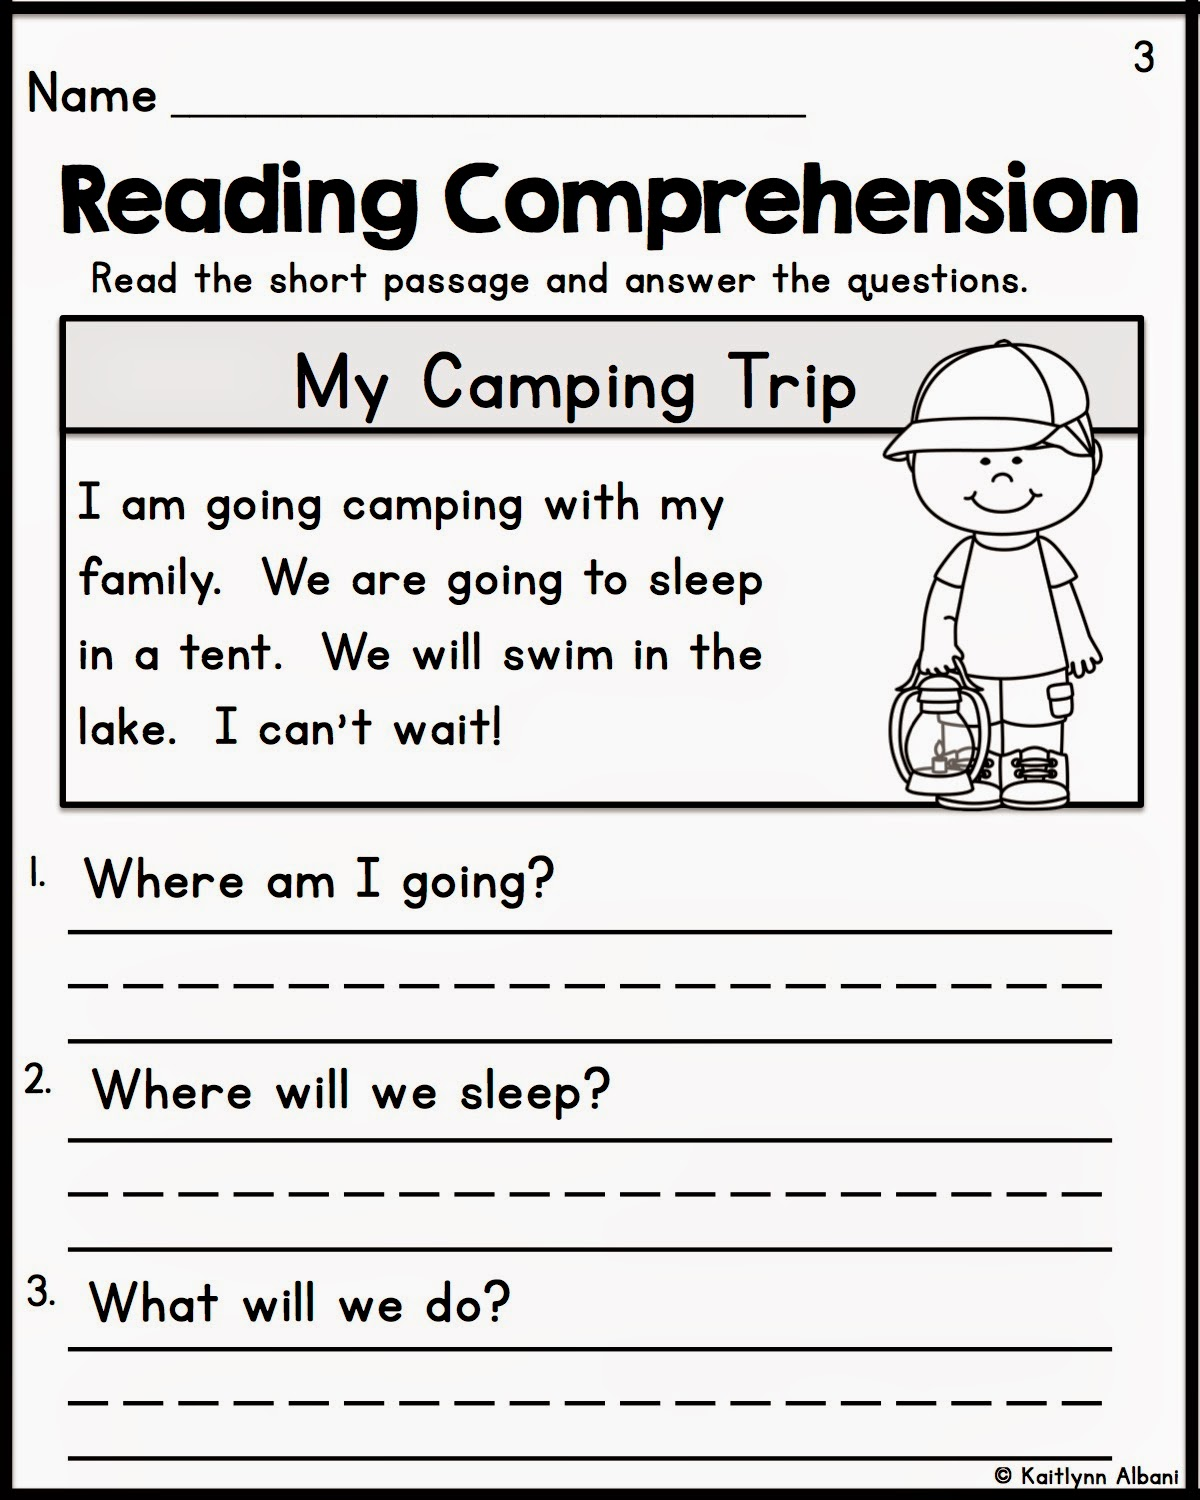 Worksheets Free Printable Reading Comprehension Worksheets For 2nd Grade third grade reading comprehension worksheets free printable teacher entrepreneurs ii kindergarten passages